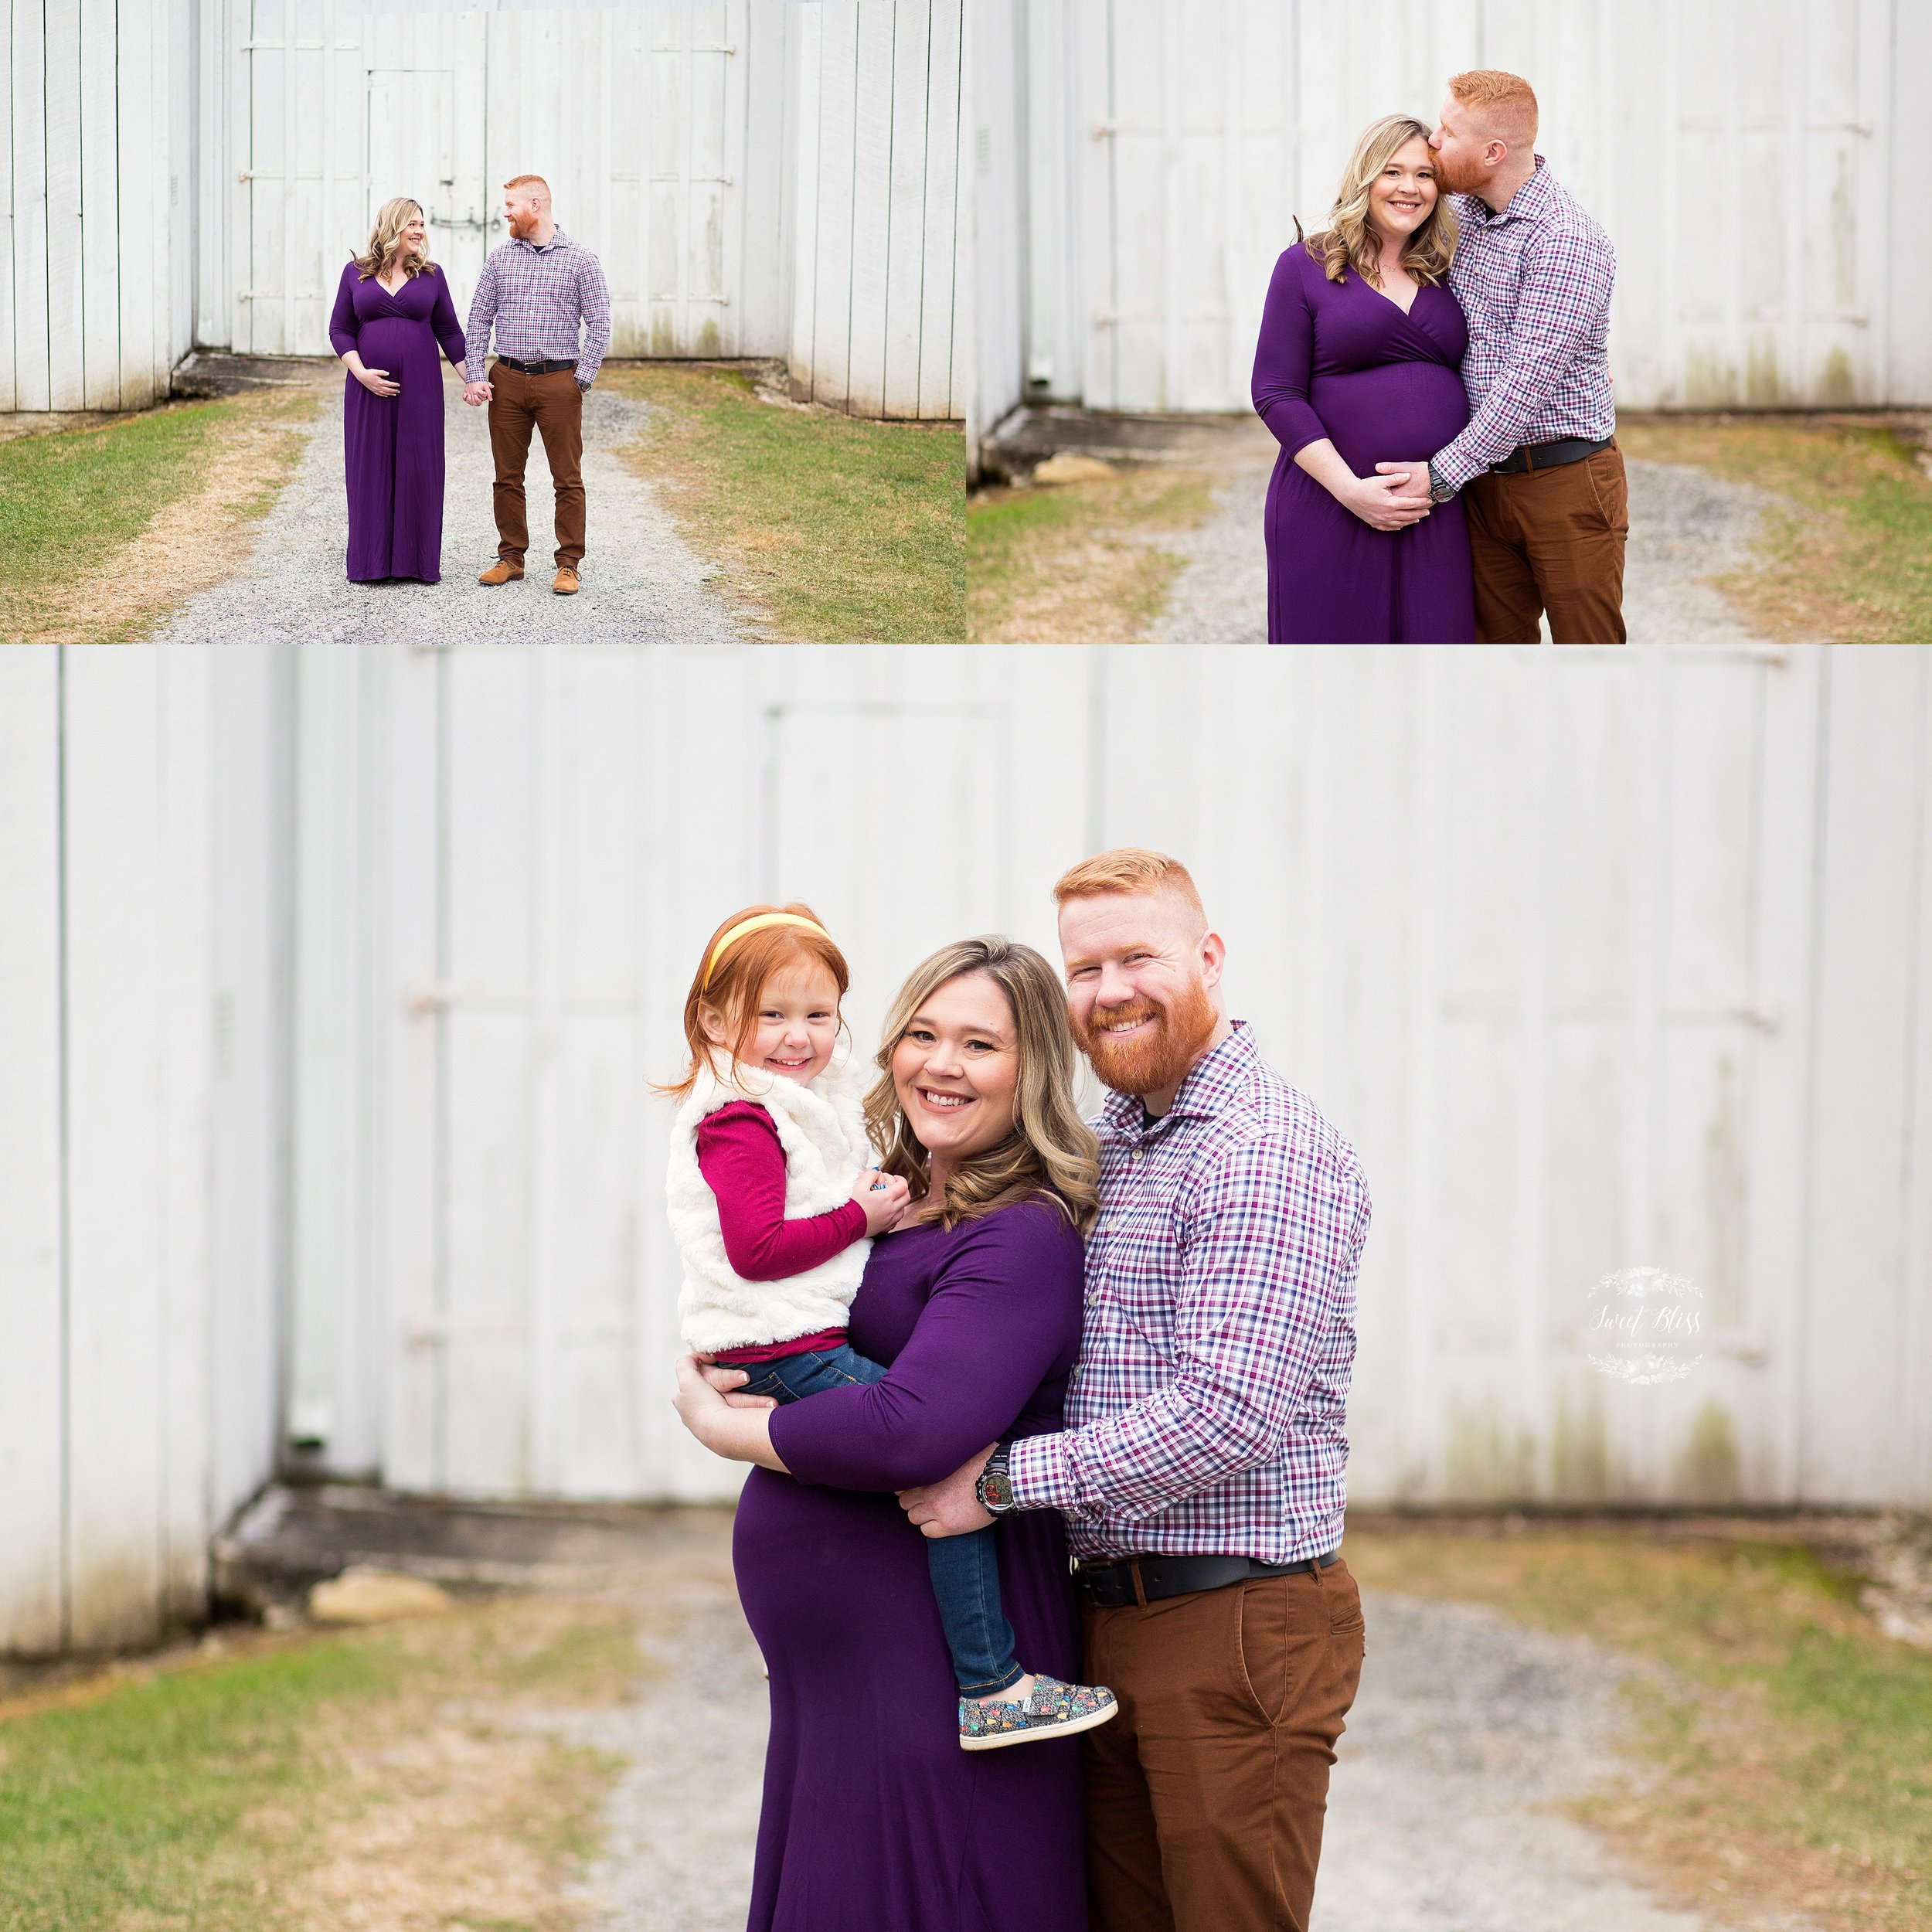 MarylandMaternityPhotographer_sweetblissphoto_baltimorephotographer.jpg